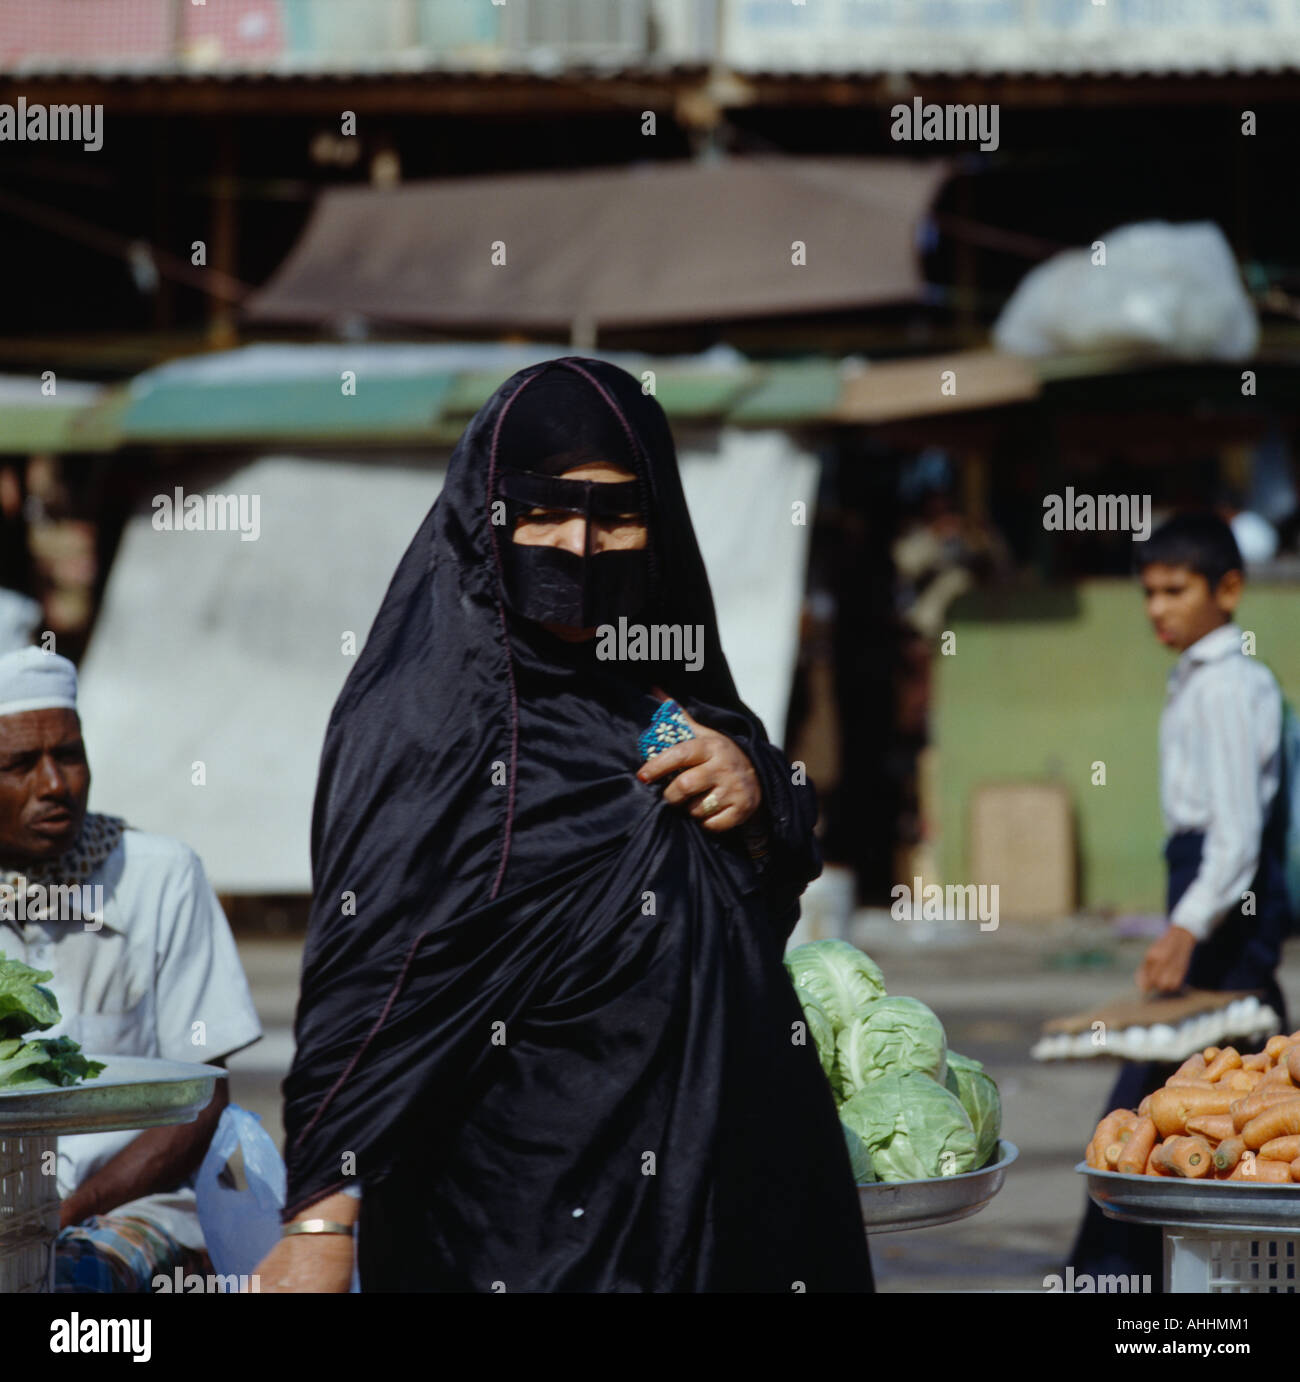 UAE Dubai Middle East Gulf State Arab woman in black clothing wearing yashmak covering her face at local street market. - Stock Image